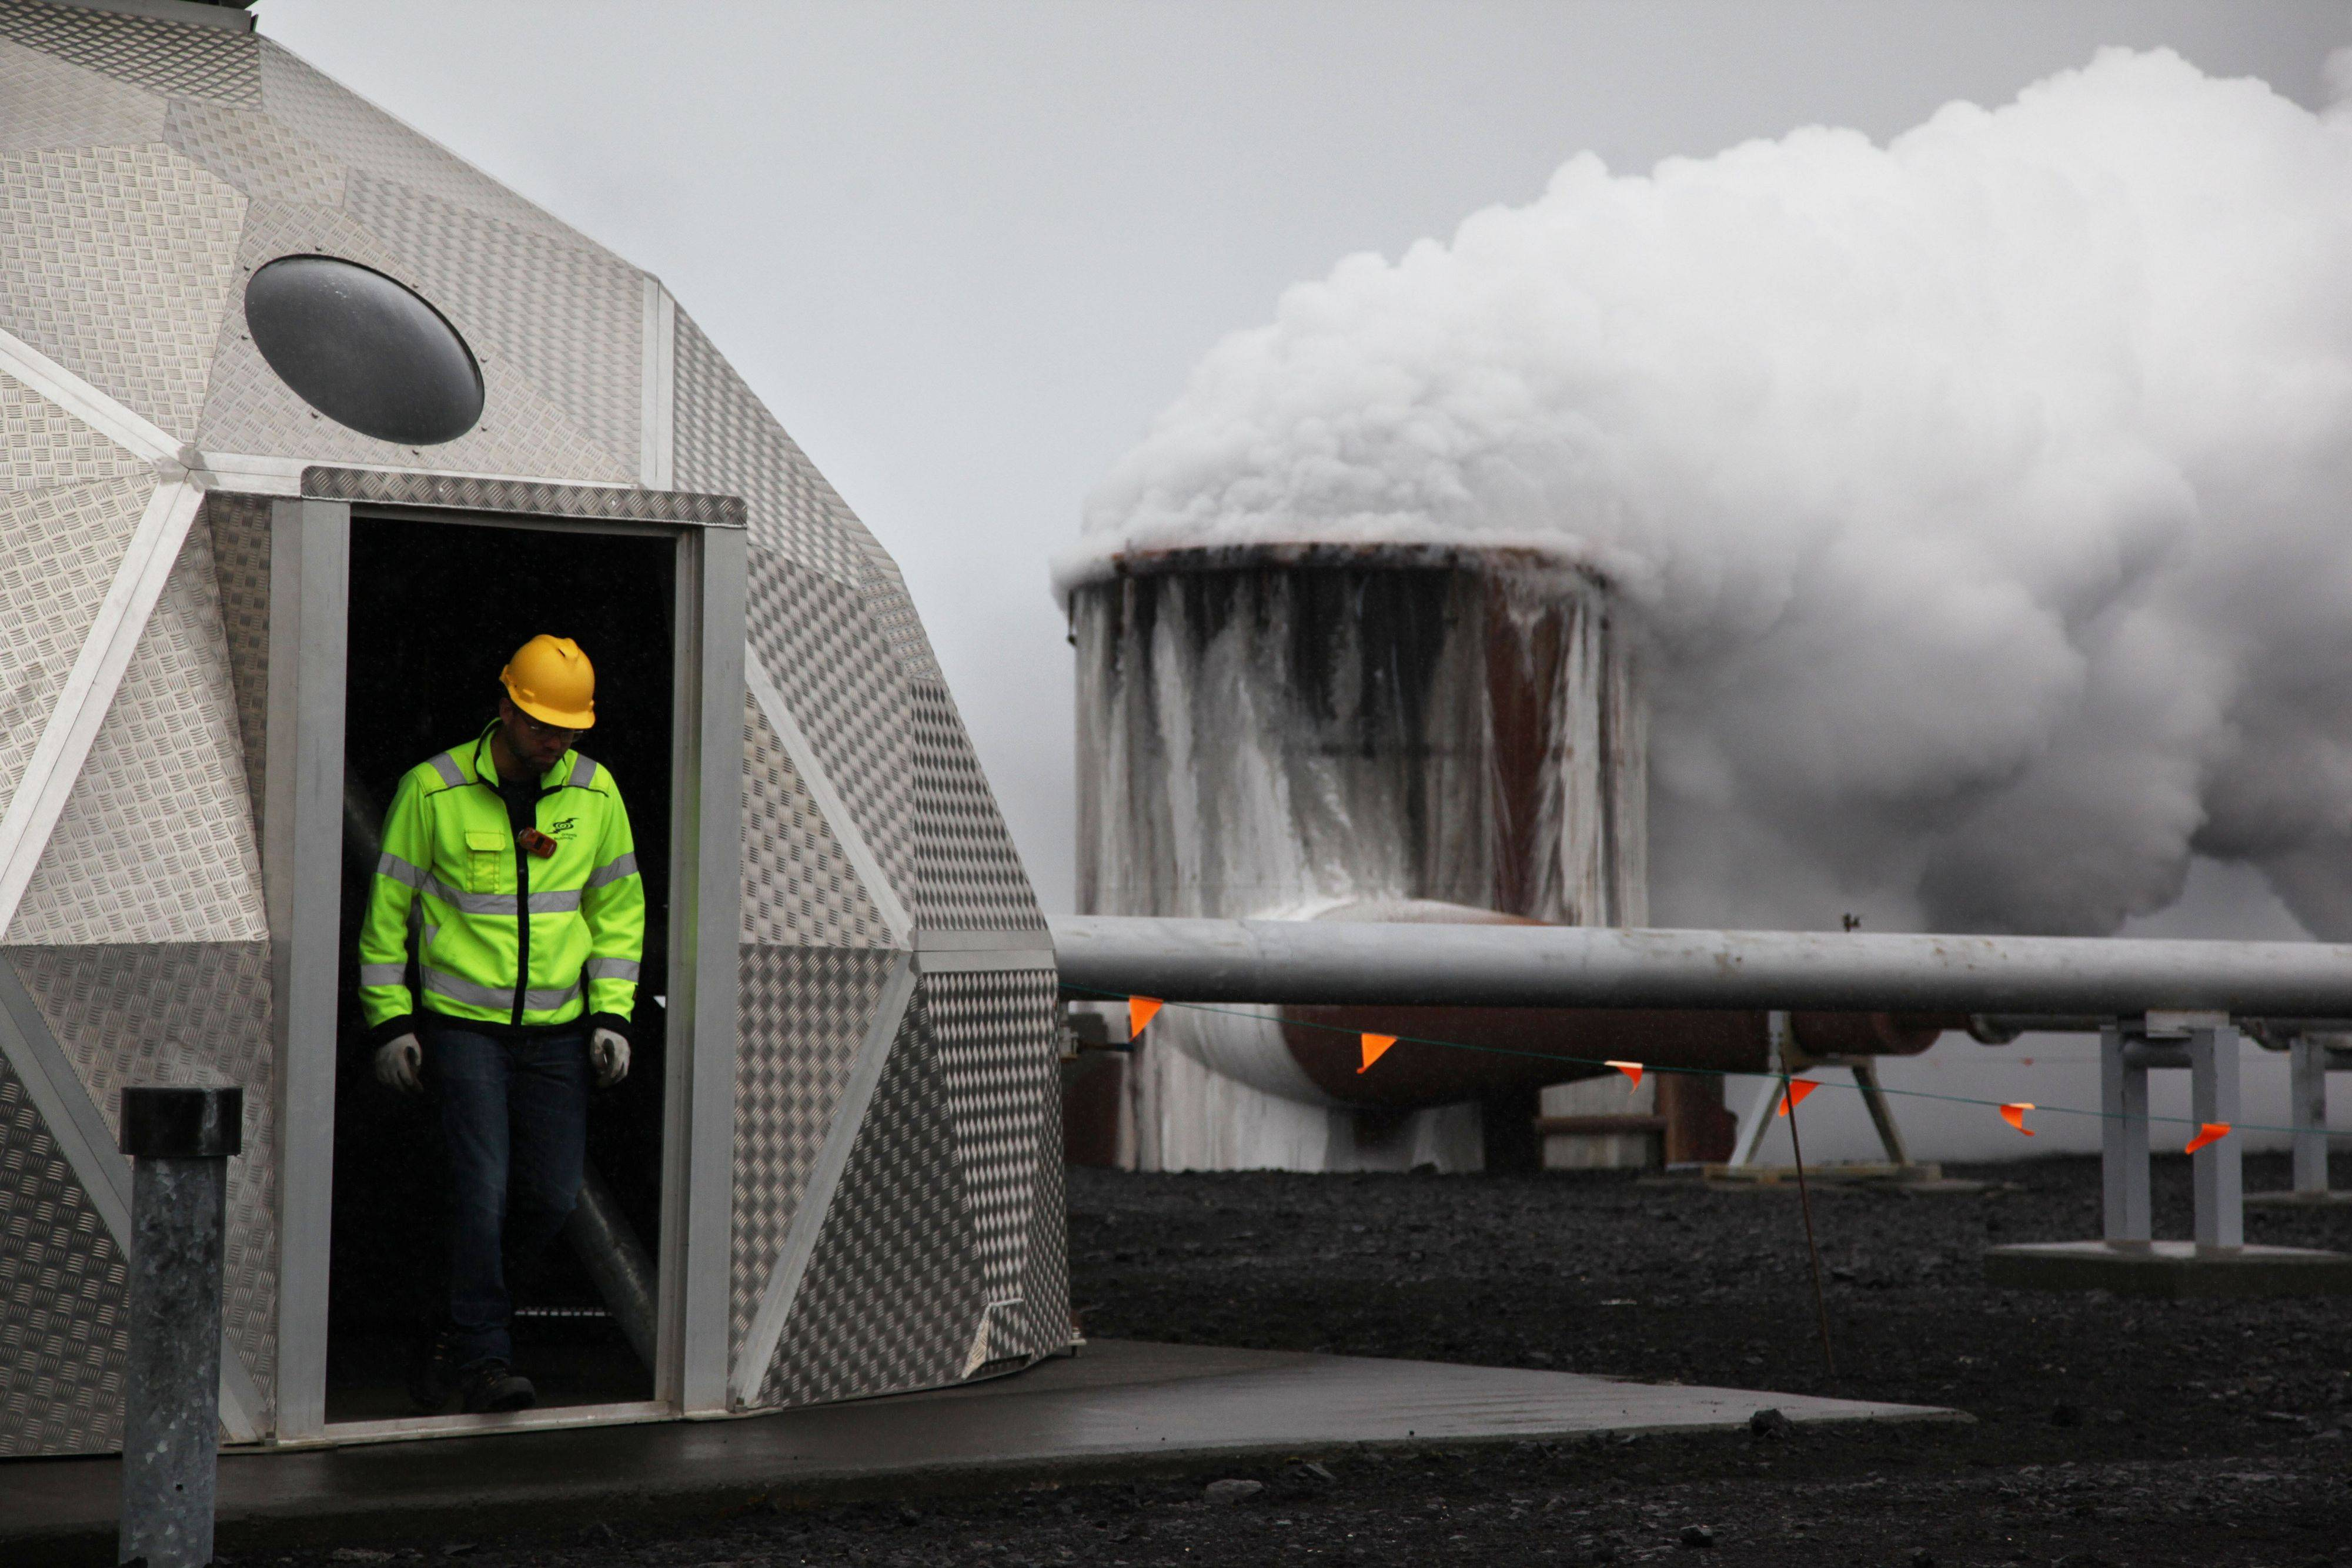 Bergur Sigfusson, the CarbFix experiment's technical manager, inspects a test well at Reykjavik Energy's Hellisheidi geothermal power plant in Iceland. CarbFix's scientists will separate carbon dioxide from the volcanic field's steam and pump it underground to react with porous basalt rock, forming limestone, to see how well the gas most responsible for global warming can be locked away in harmless form.